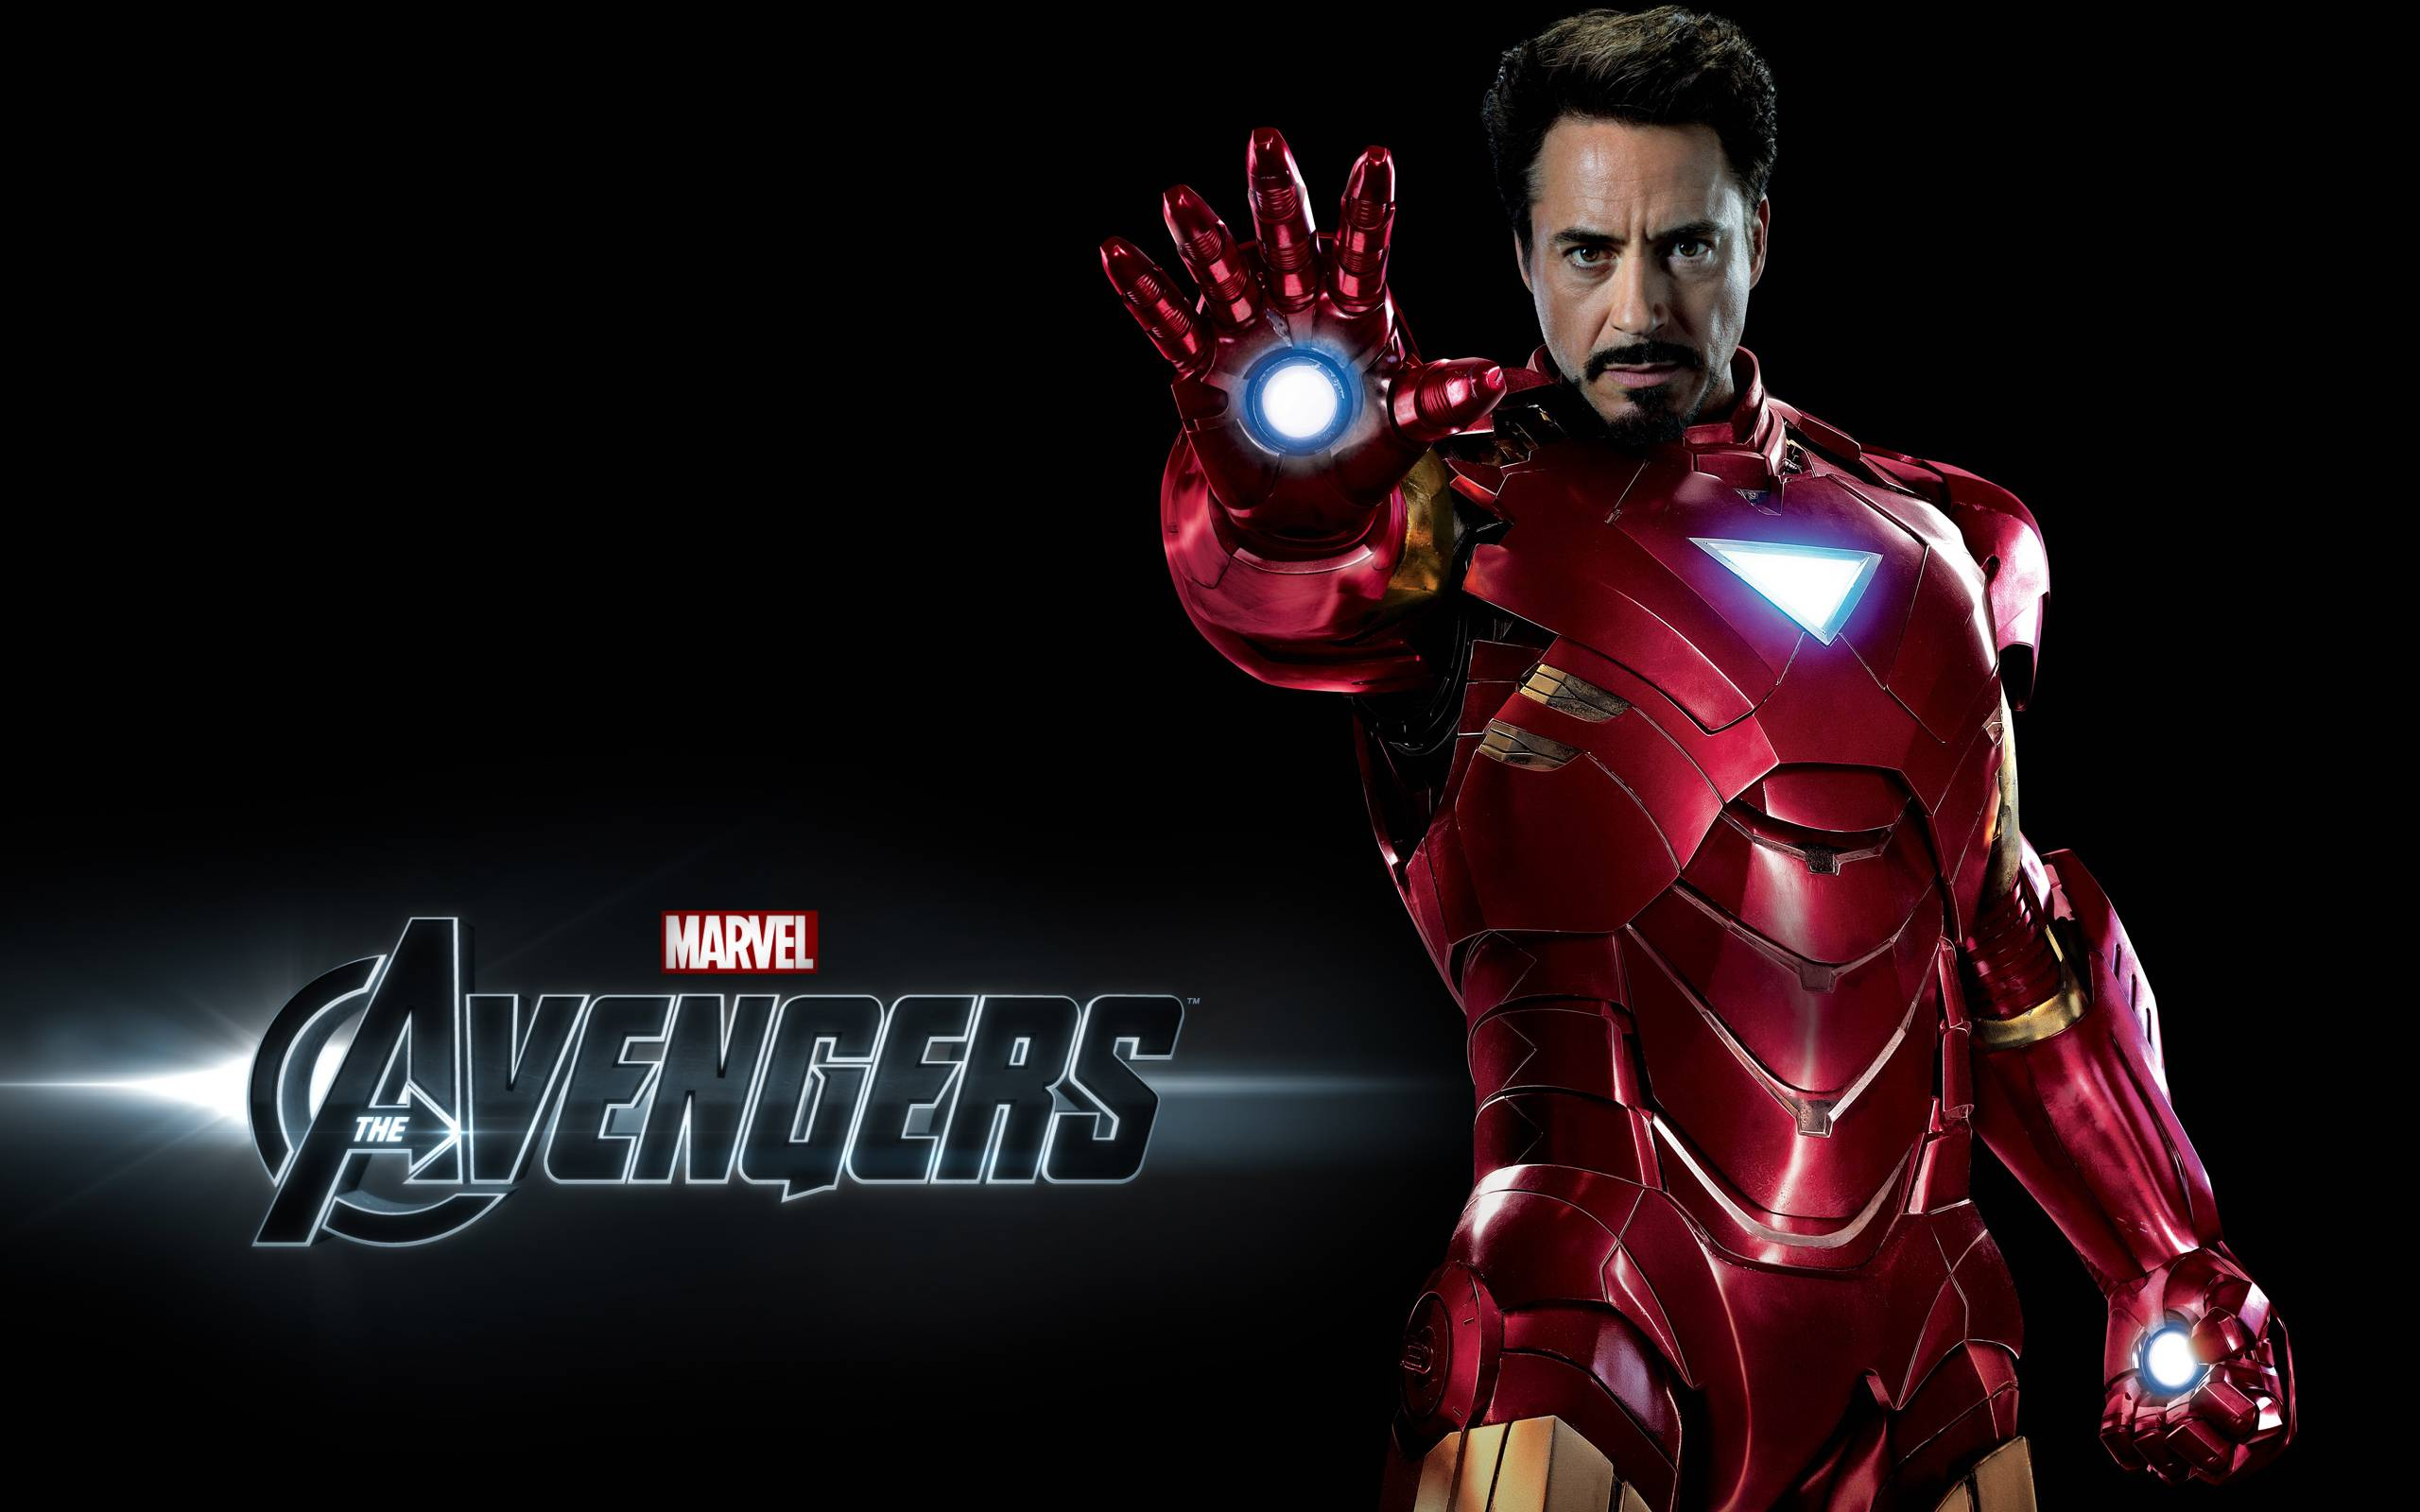 Free hd wallpaper robert downey jr - Robert Downey Jr Iron Man Background Wallpaper Celebrities